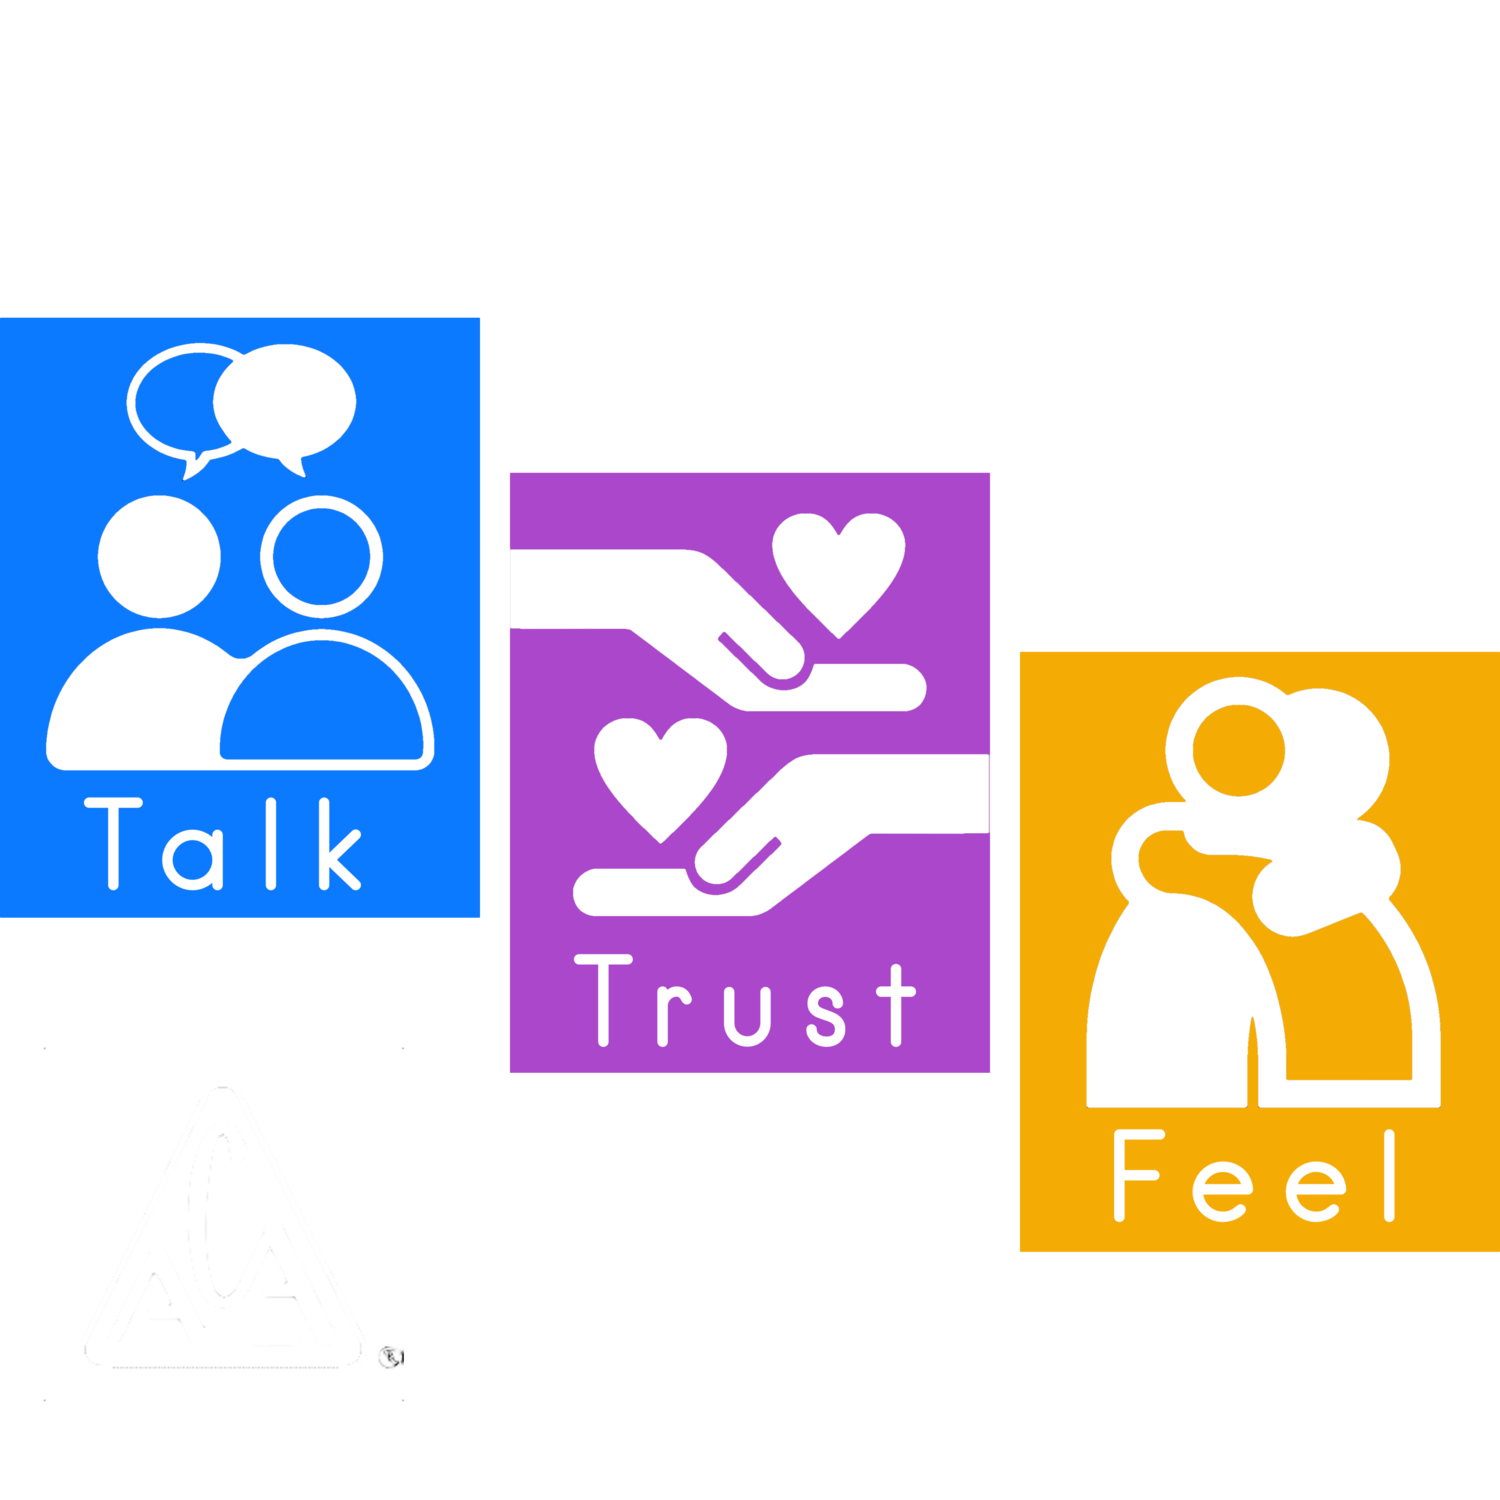 ACA ABC & 2nd World Convention